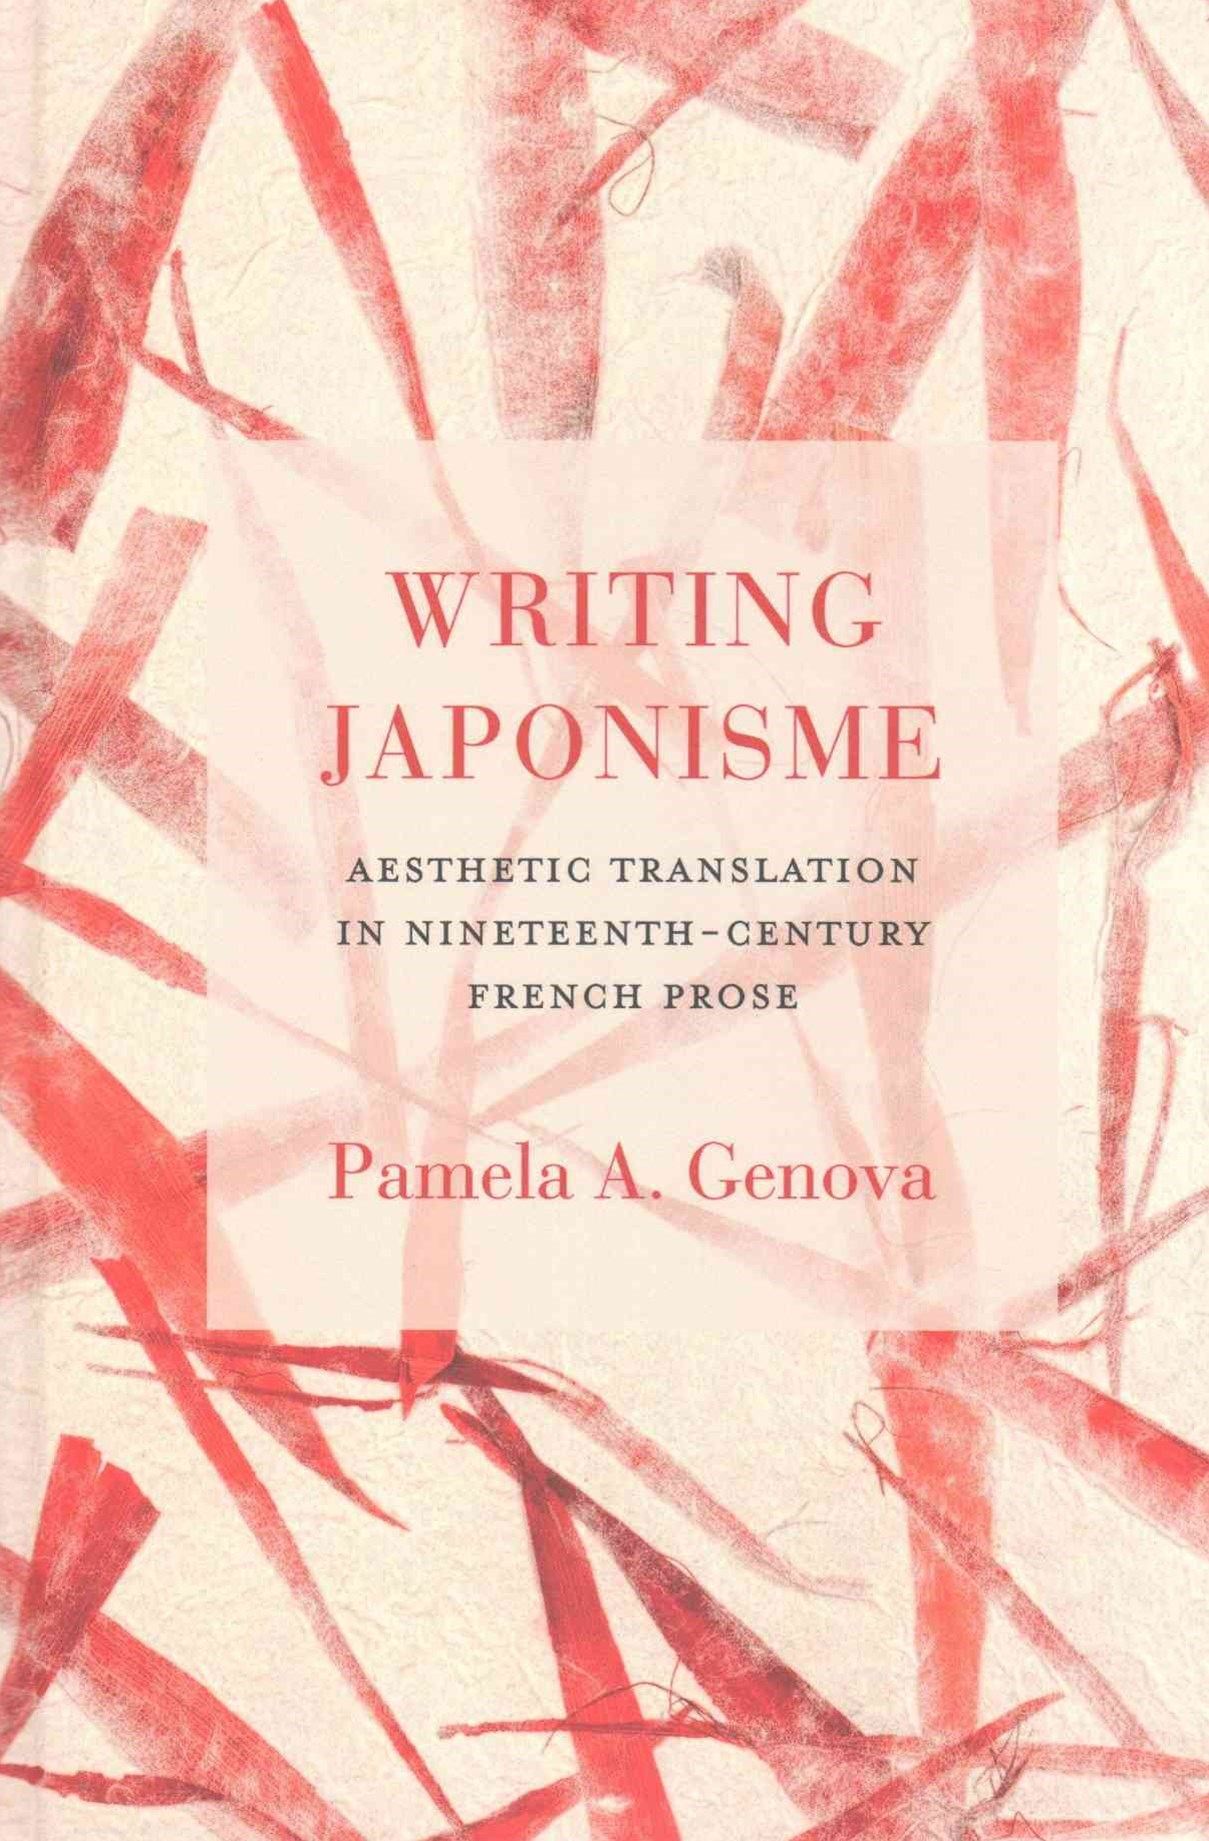 Writing Japonisme